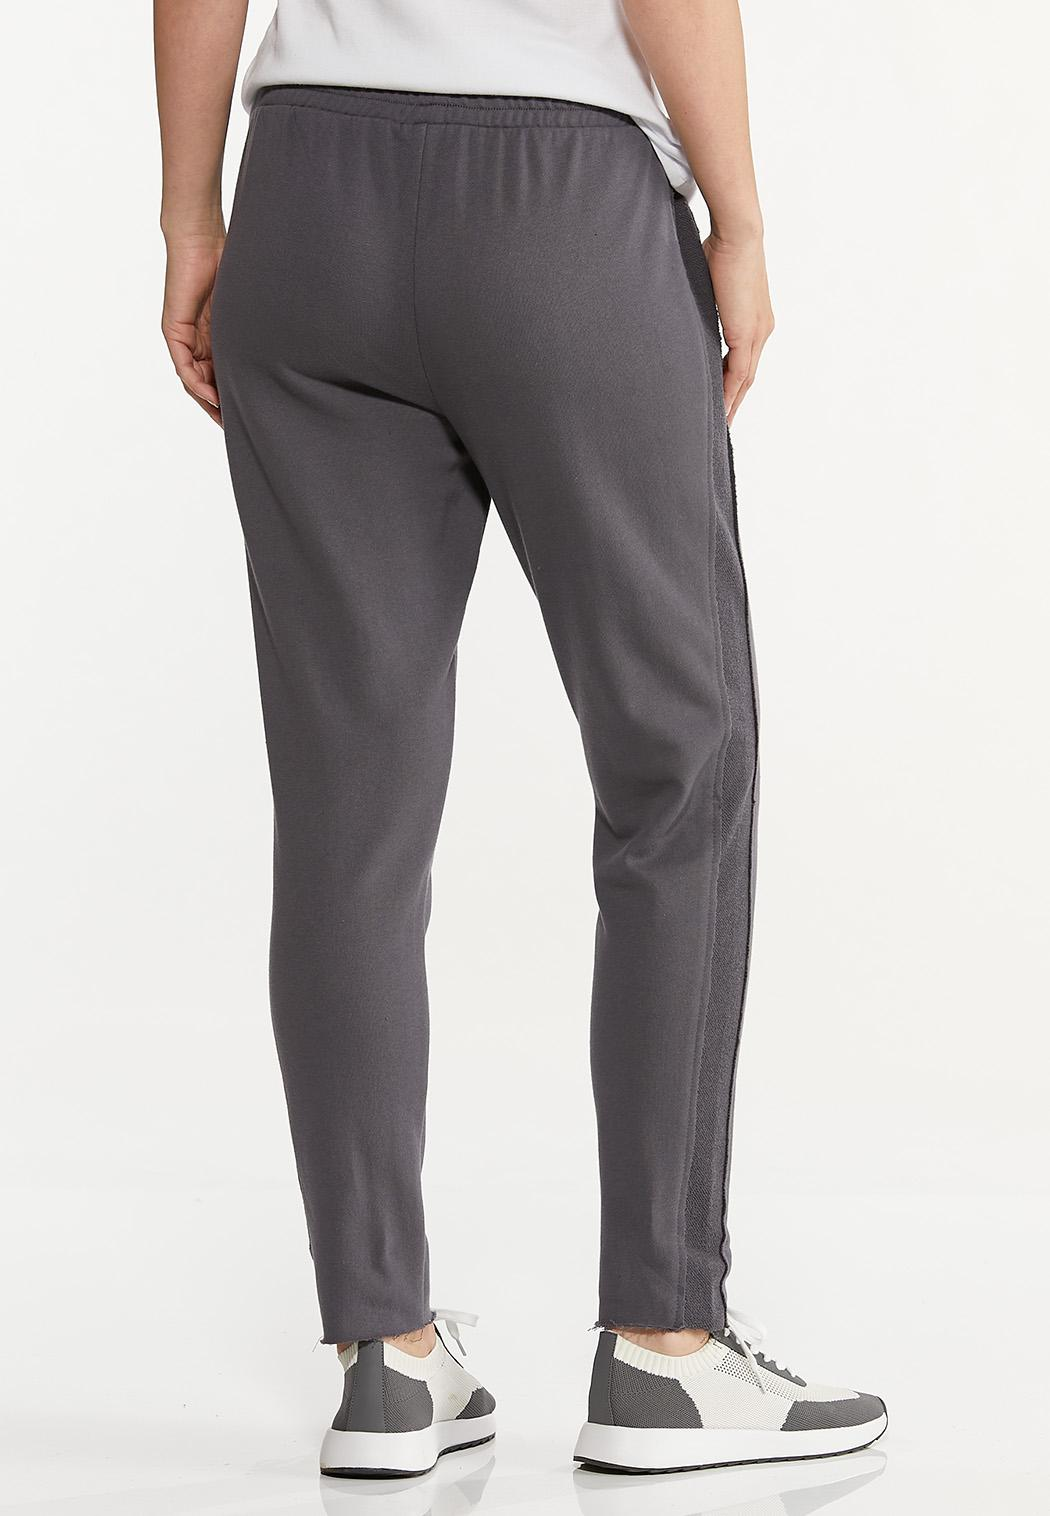 Petite Contrasting French Terry Pants (Item #44630817)